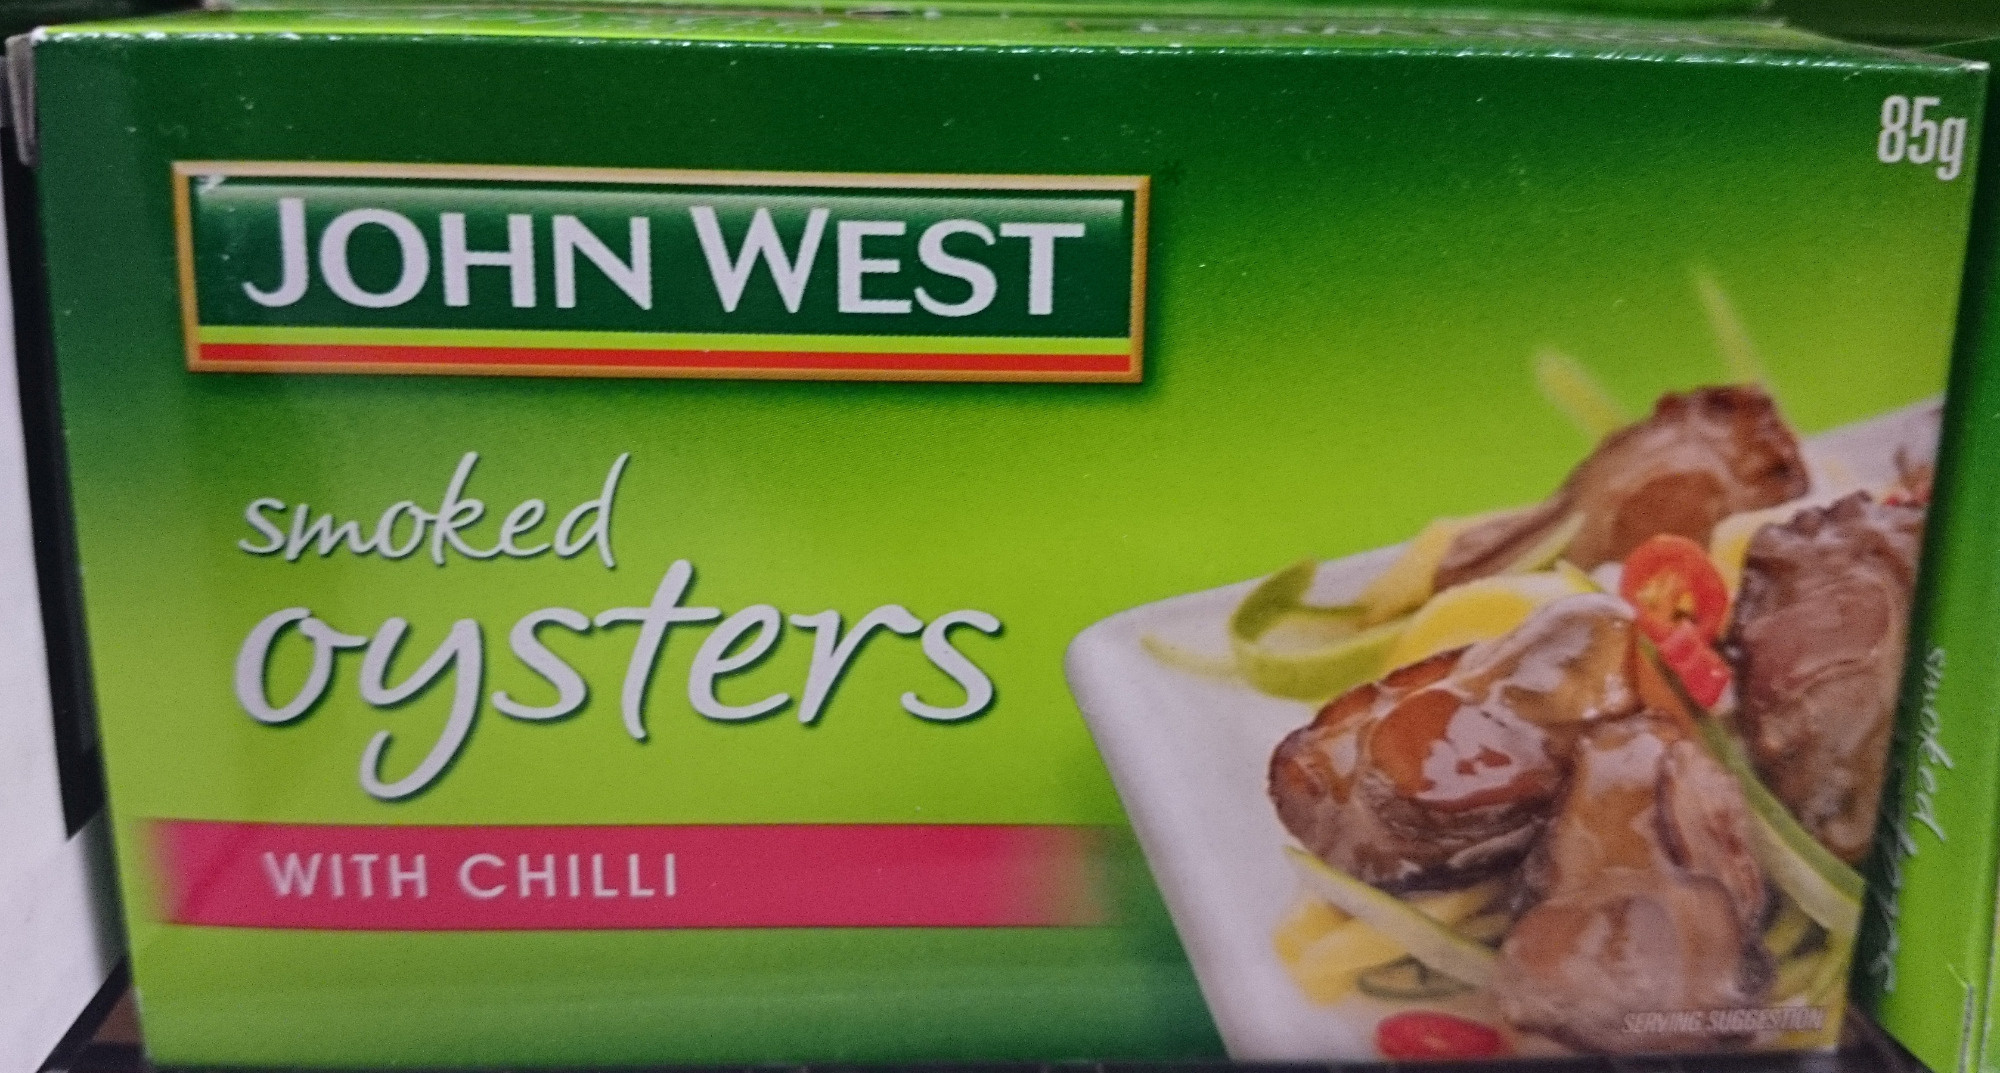 John West Smoked Oysters with Chilli - Product - en